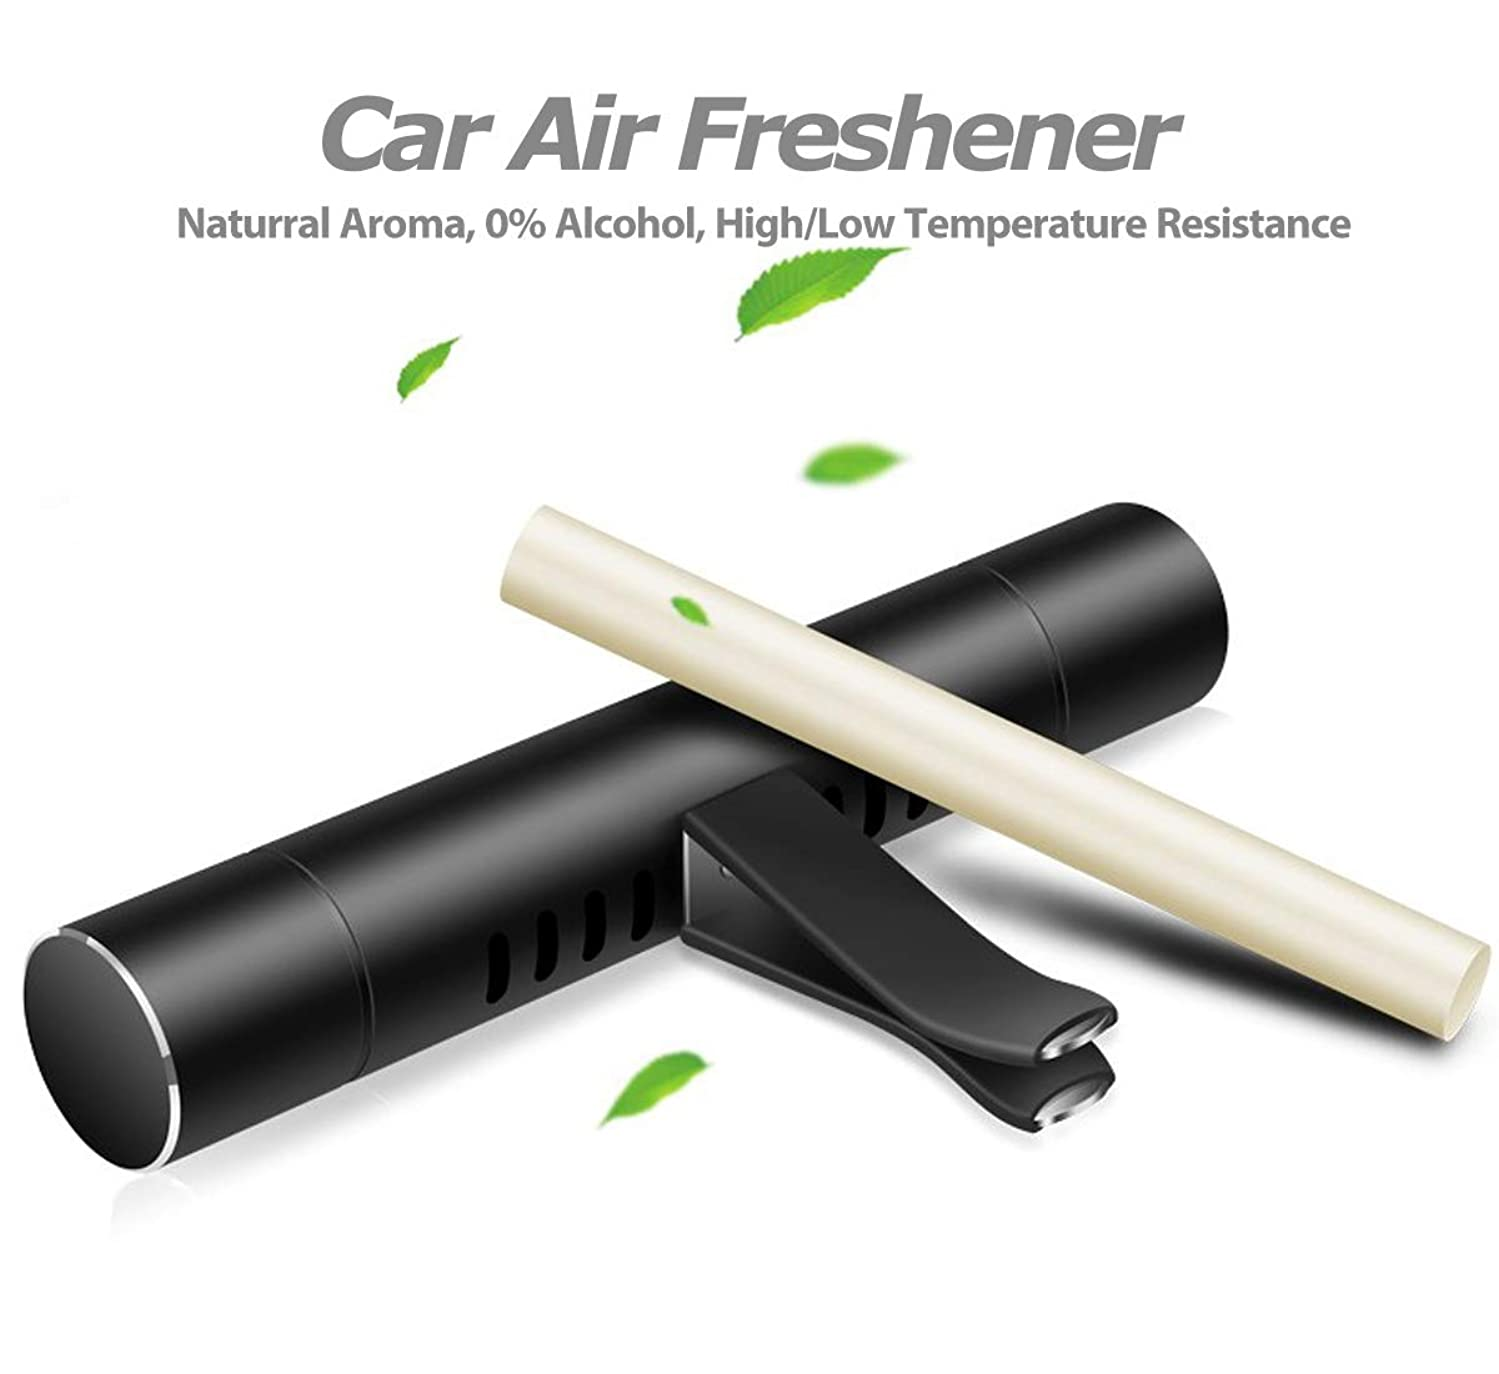 Car Air Freshener, VENENO Car Solid Air Purifier Air Diffuse Freshener Car Perfume Vehicle Aroma with 3 Scents Bars for Vehicle Bedroom Office Travel Improve Air Quality